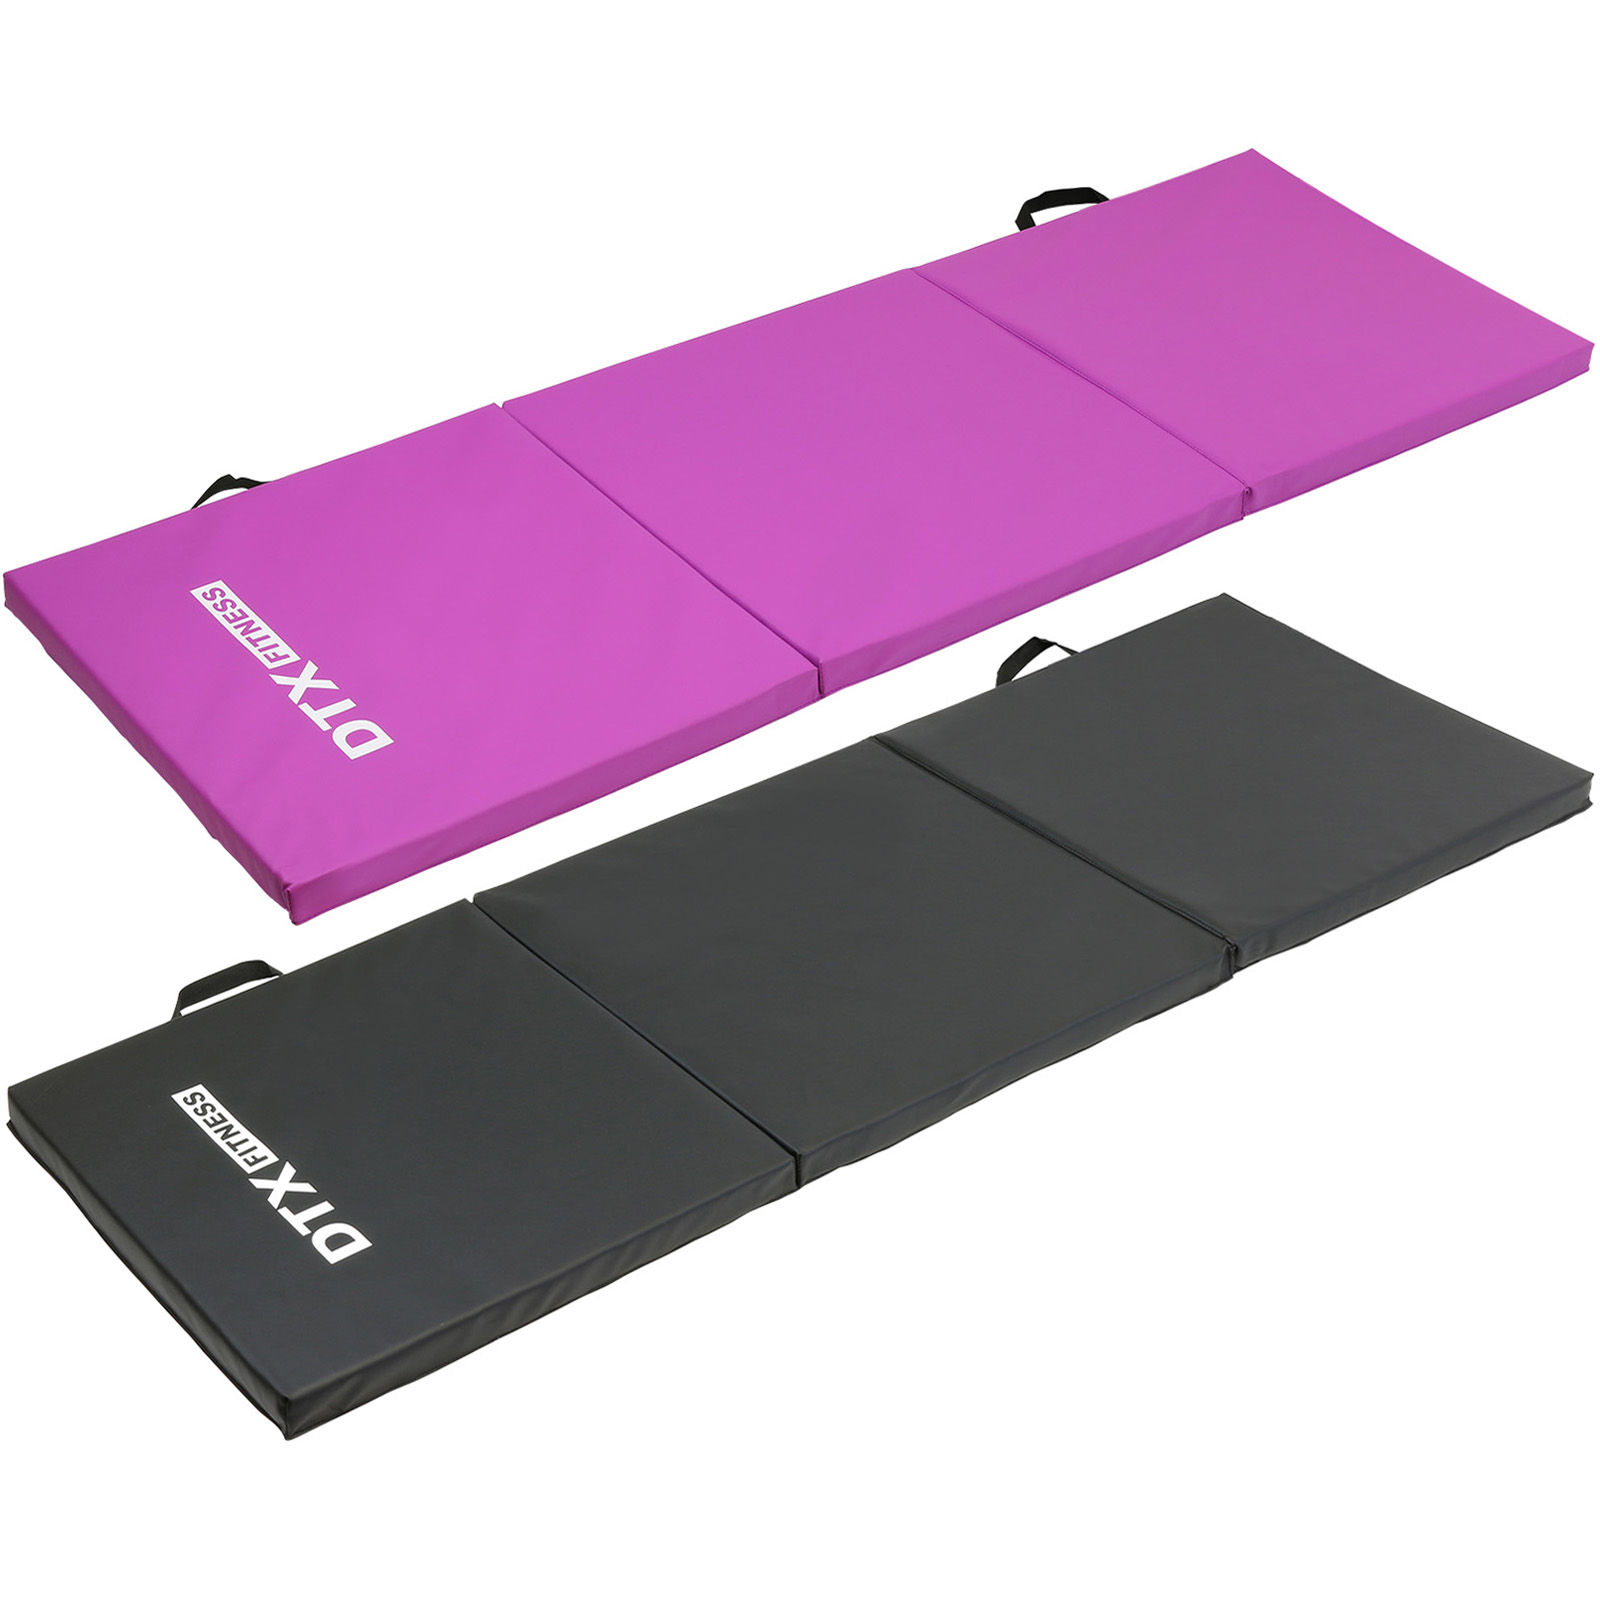 DTX Fitness Folding 6ft Exercise Mat Yoga/Pilates/Gym